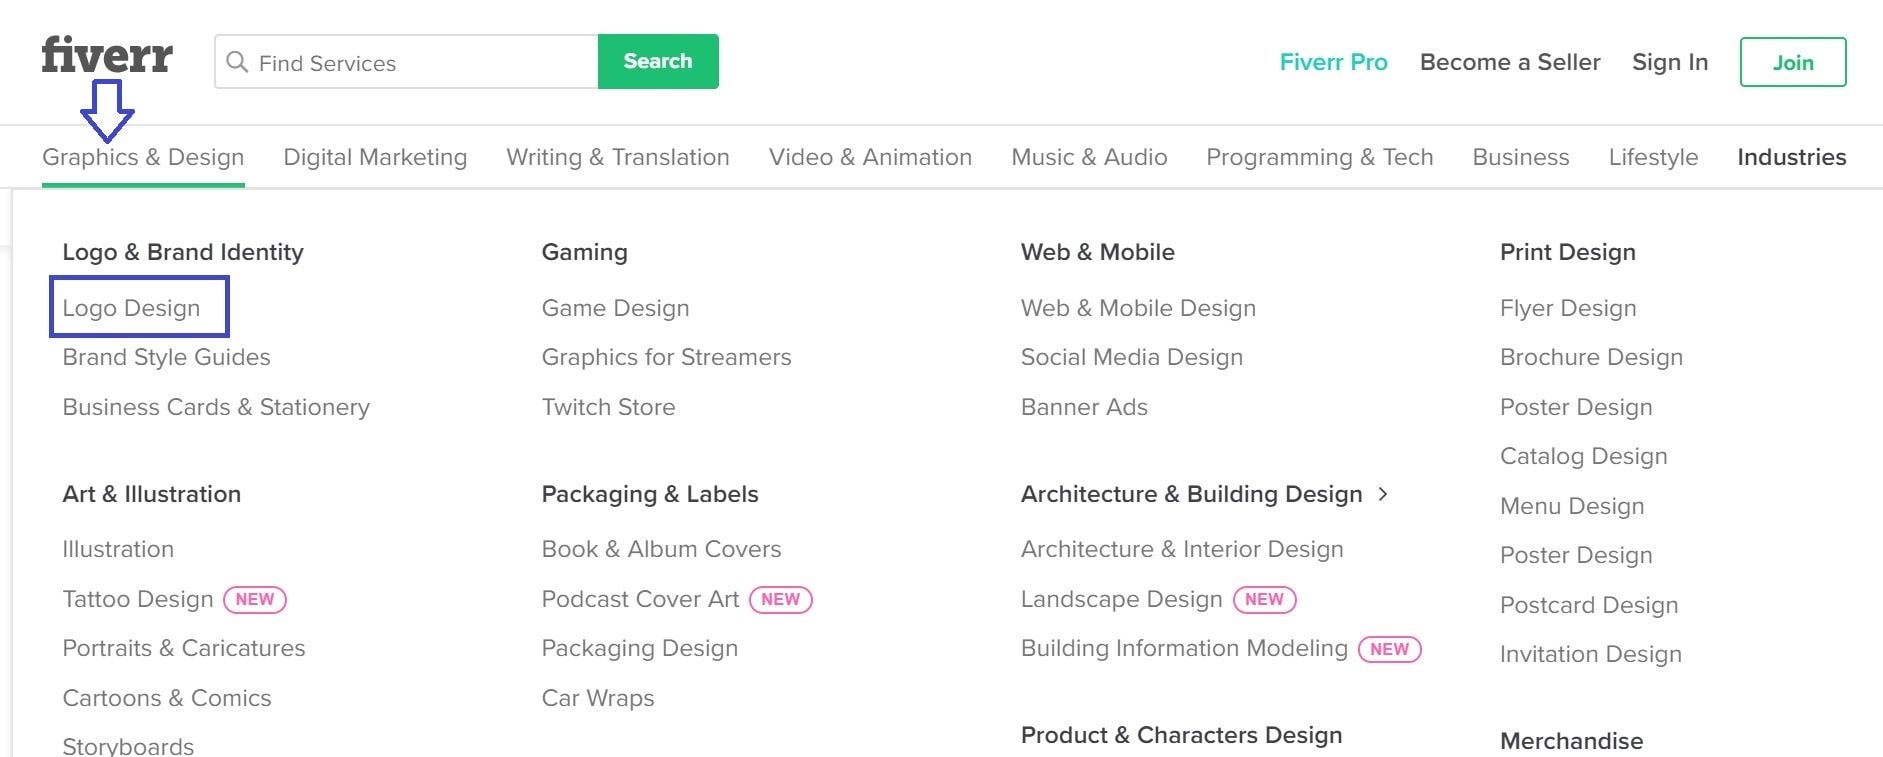 Fiverr screenshot - Graphics & Design menu